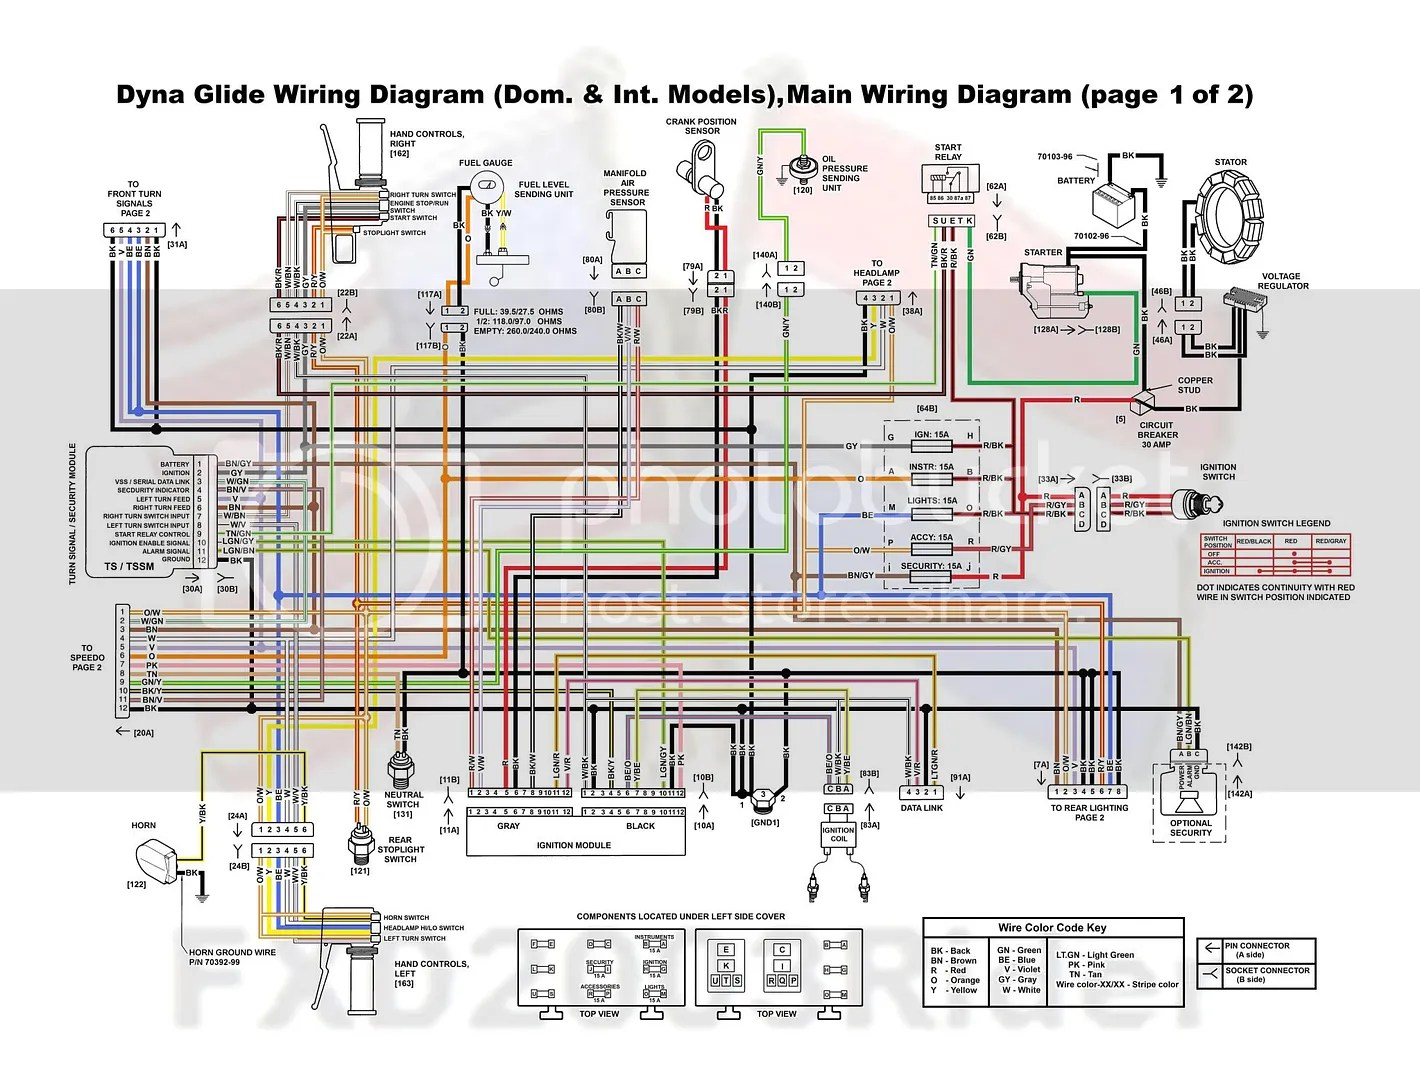 hight resolution of 1997 harley davidson heritage softail wiring diagram wiring 2002 harley davidson softail wiring diagram harley